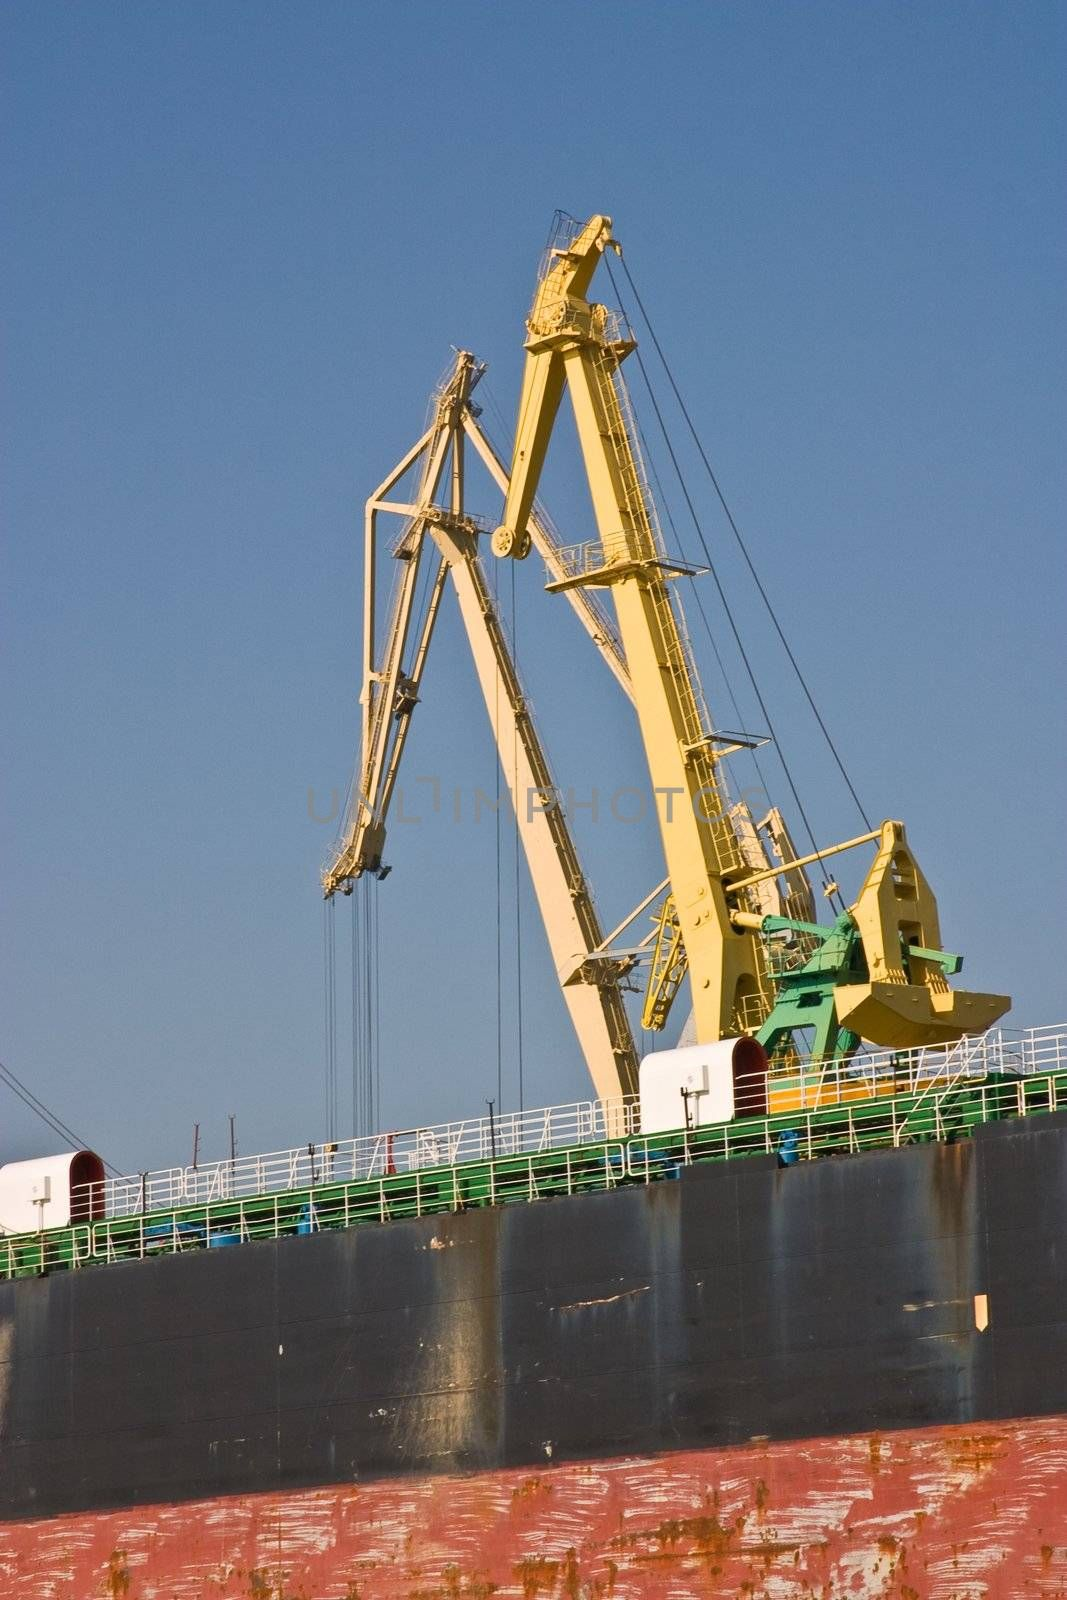 transportation series:  crane of dry cargo ship in the port